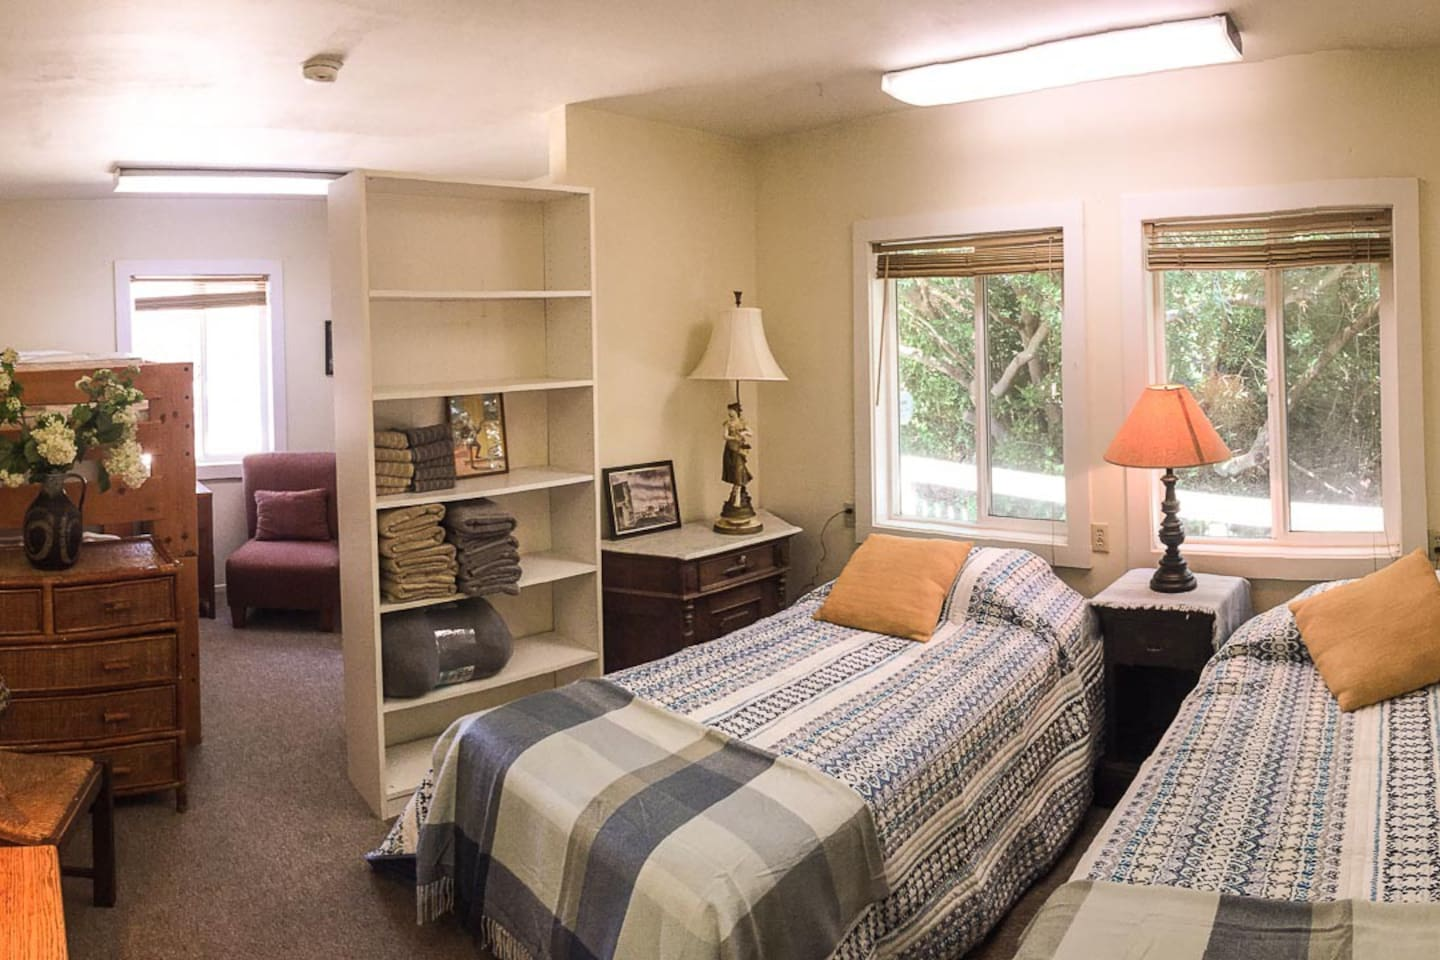 The Hwy 101 Dorm Room - Sleeping up to four.